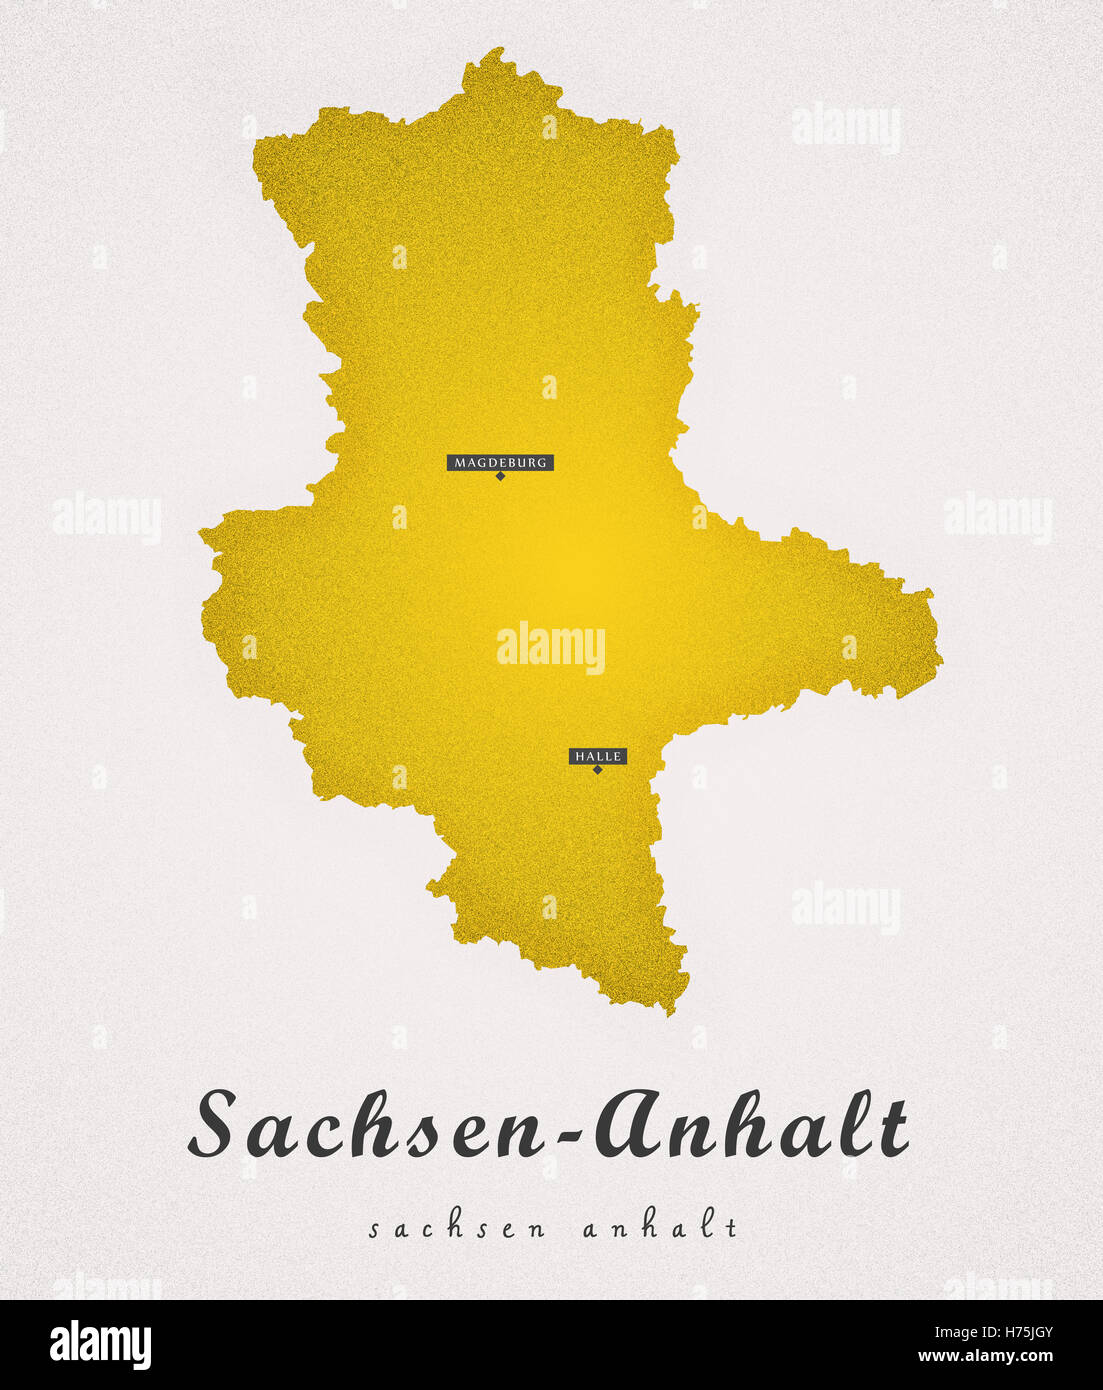 Sachsen Anhalt Germany DE Art Map Stock Photo Royalty Free Image